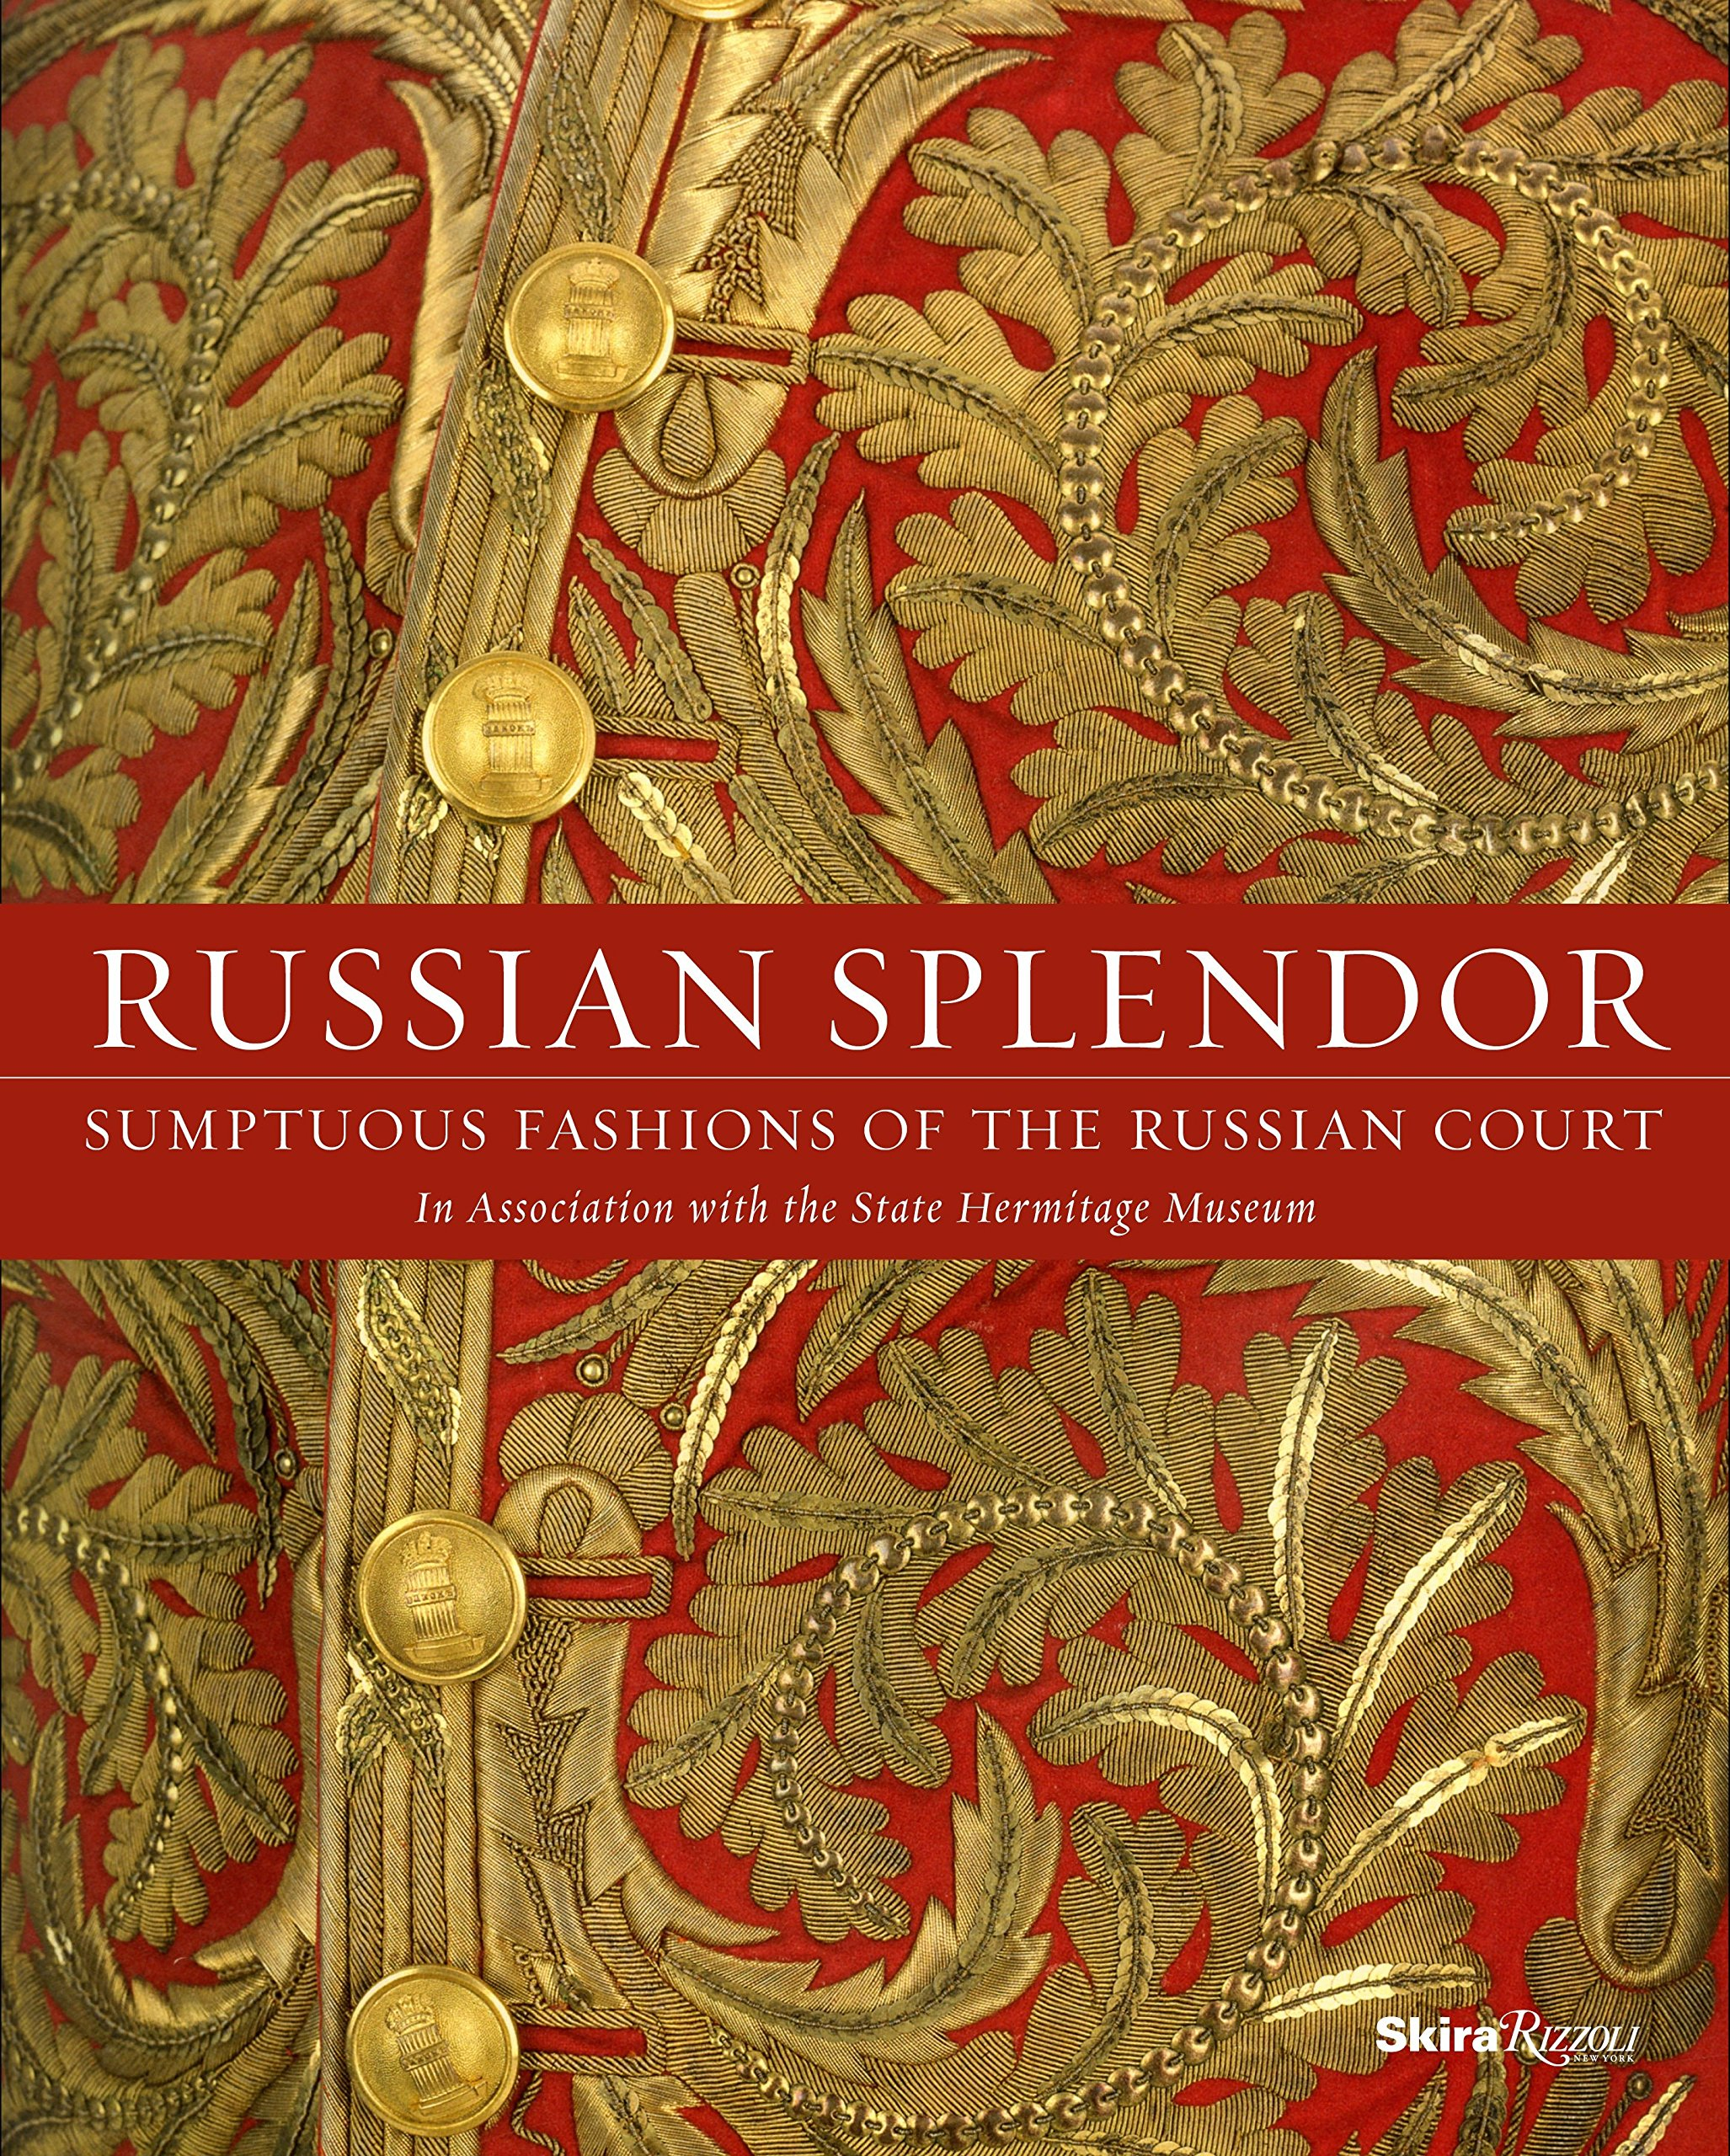 Russian Splendor: Sumptuous Fashions of the Russian Court by Skira Rizzoli